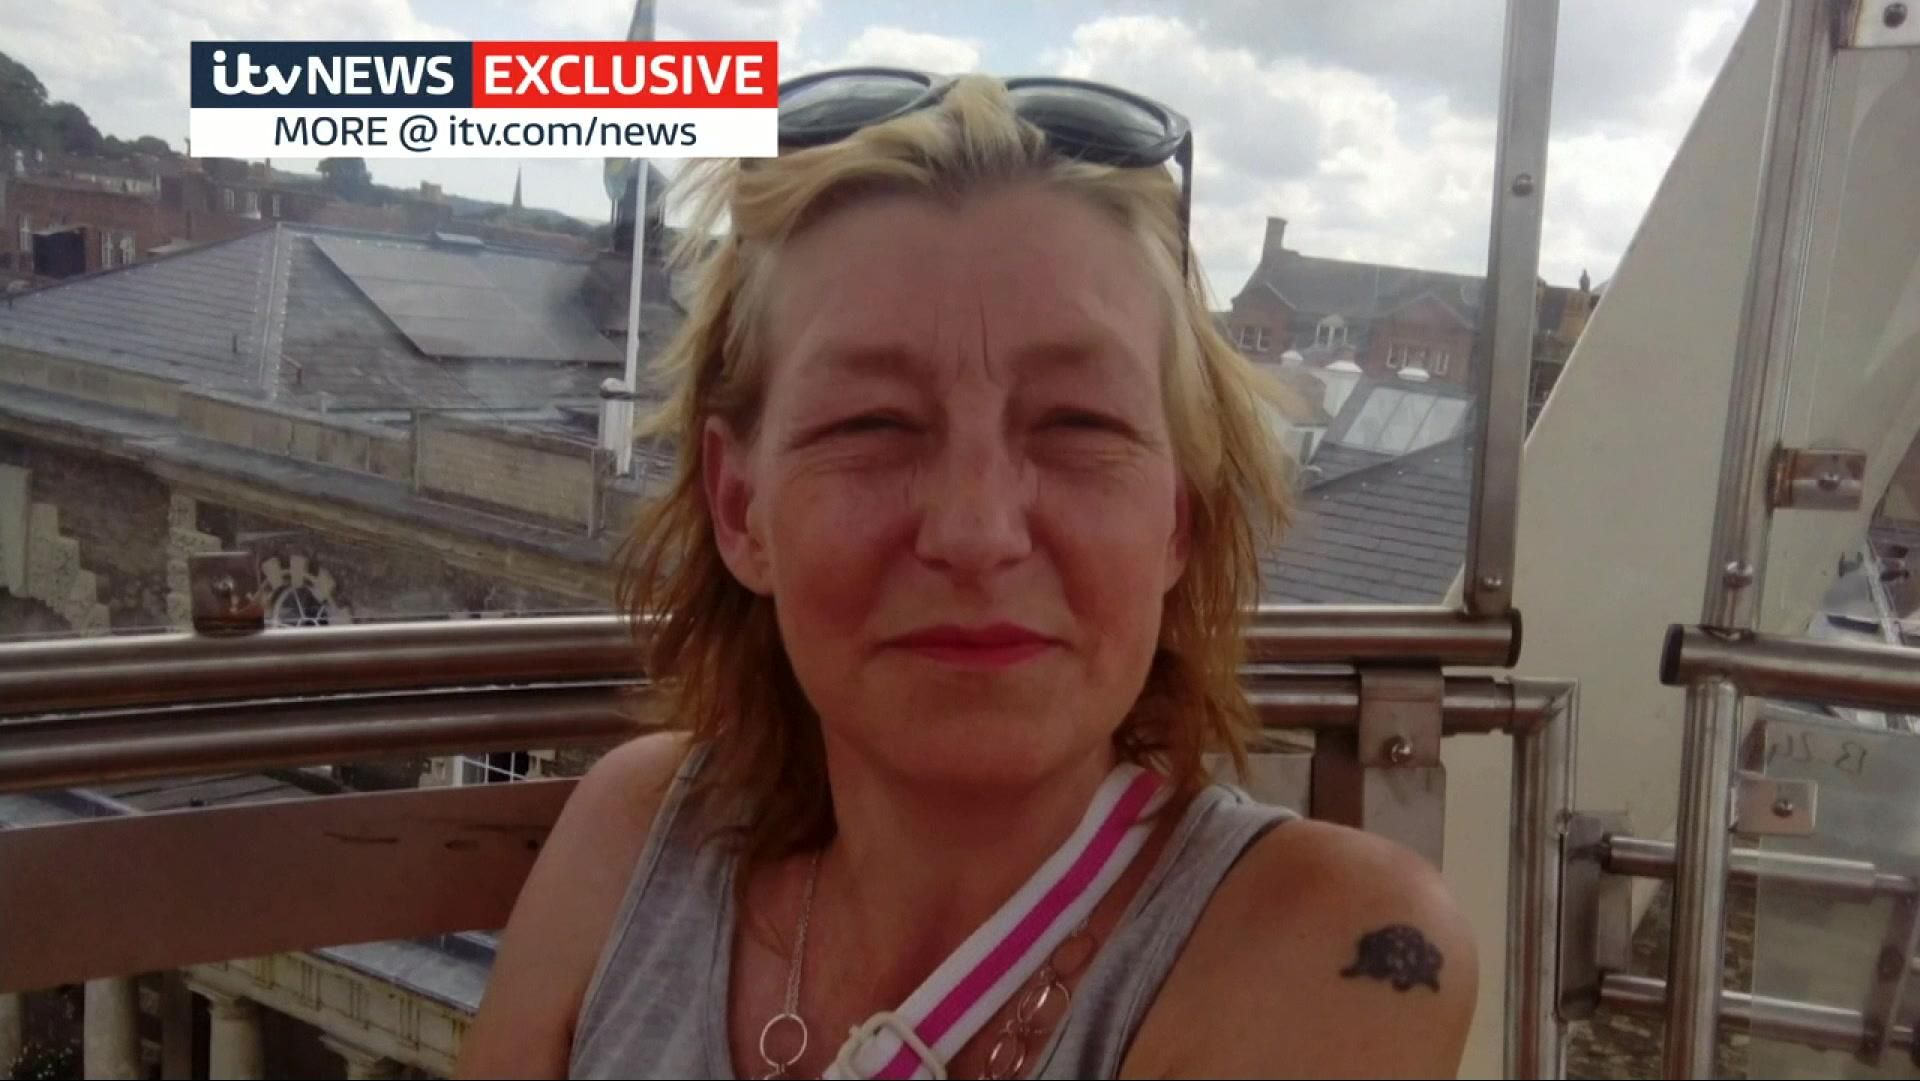 liip_a_gb_novichok_victim_interview-20.46.26.16.jpg